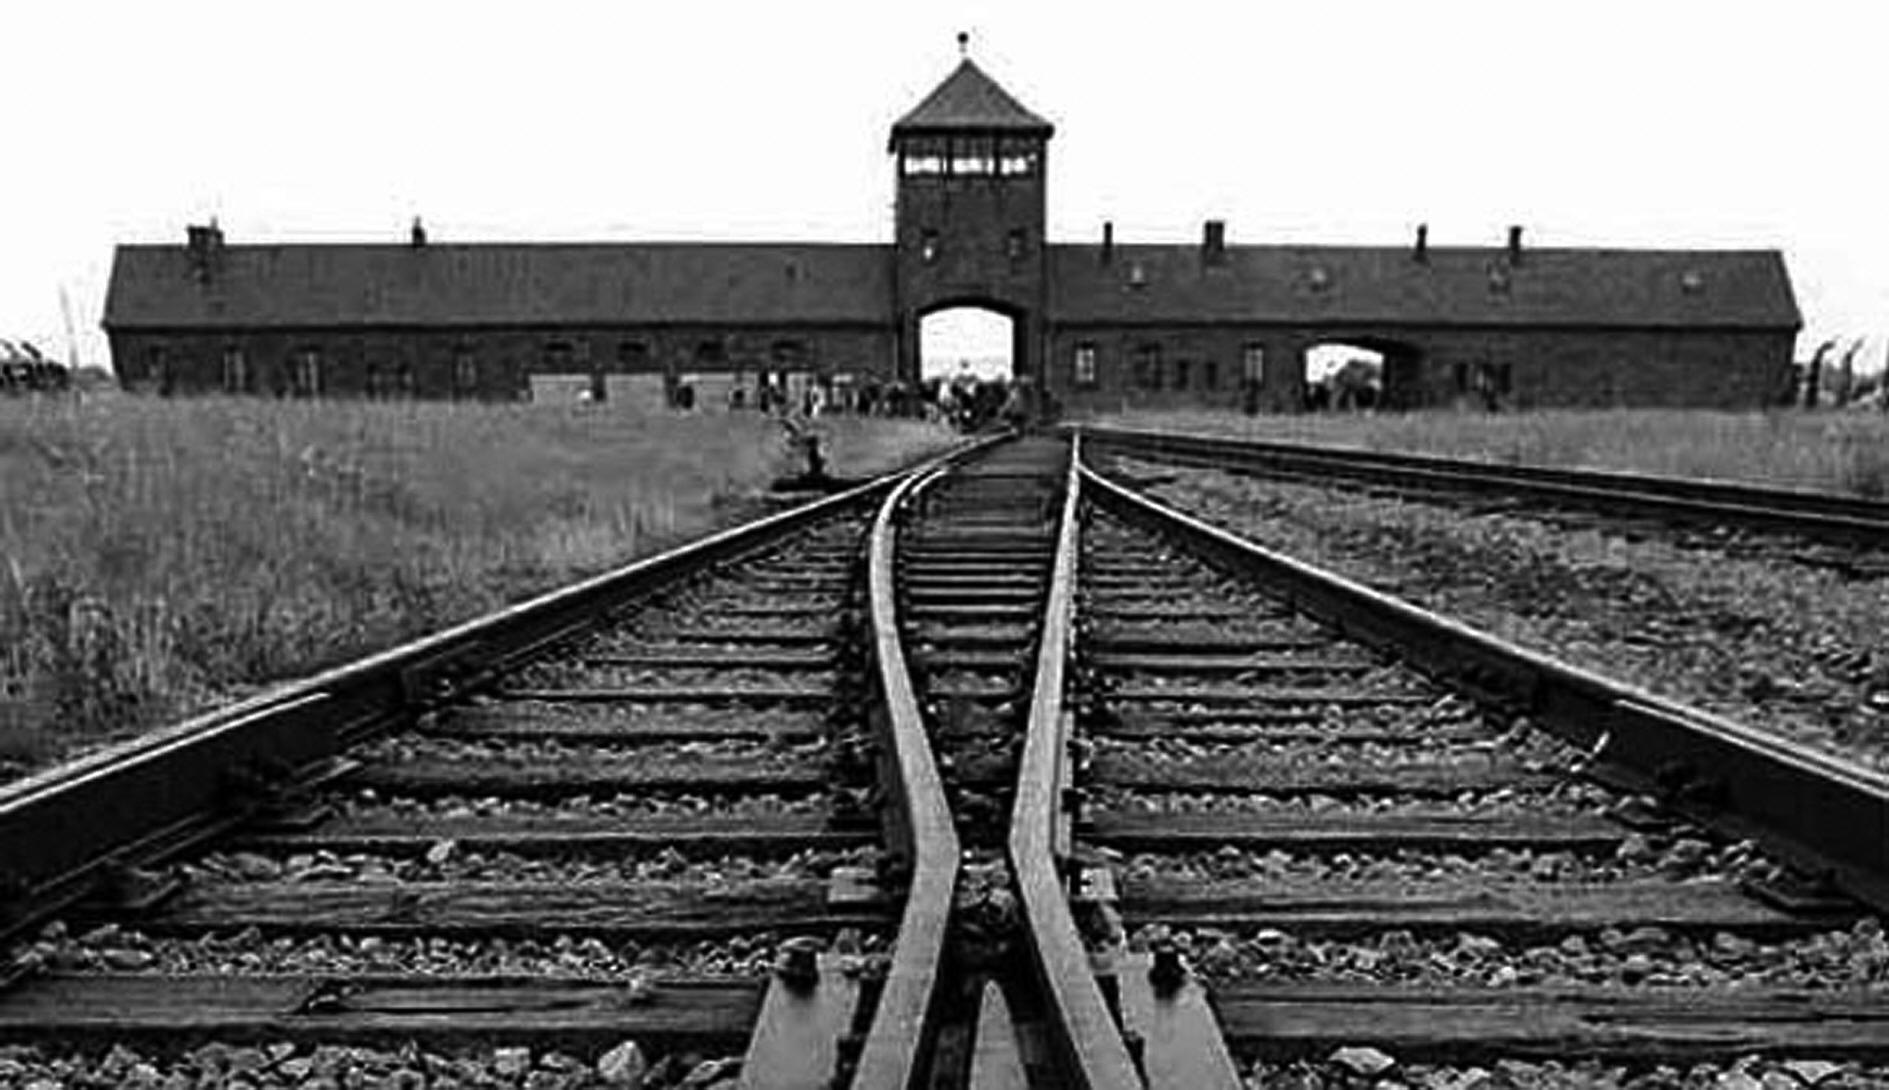 Documentaires: Auschwitz, Treblinka, Hitler